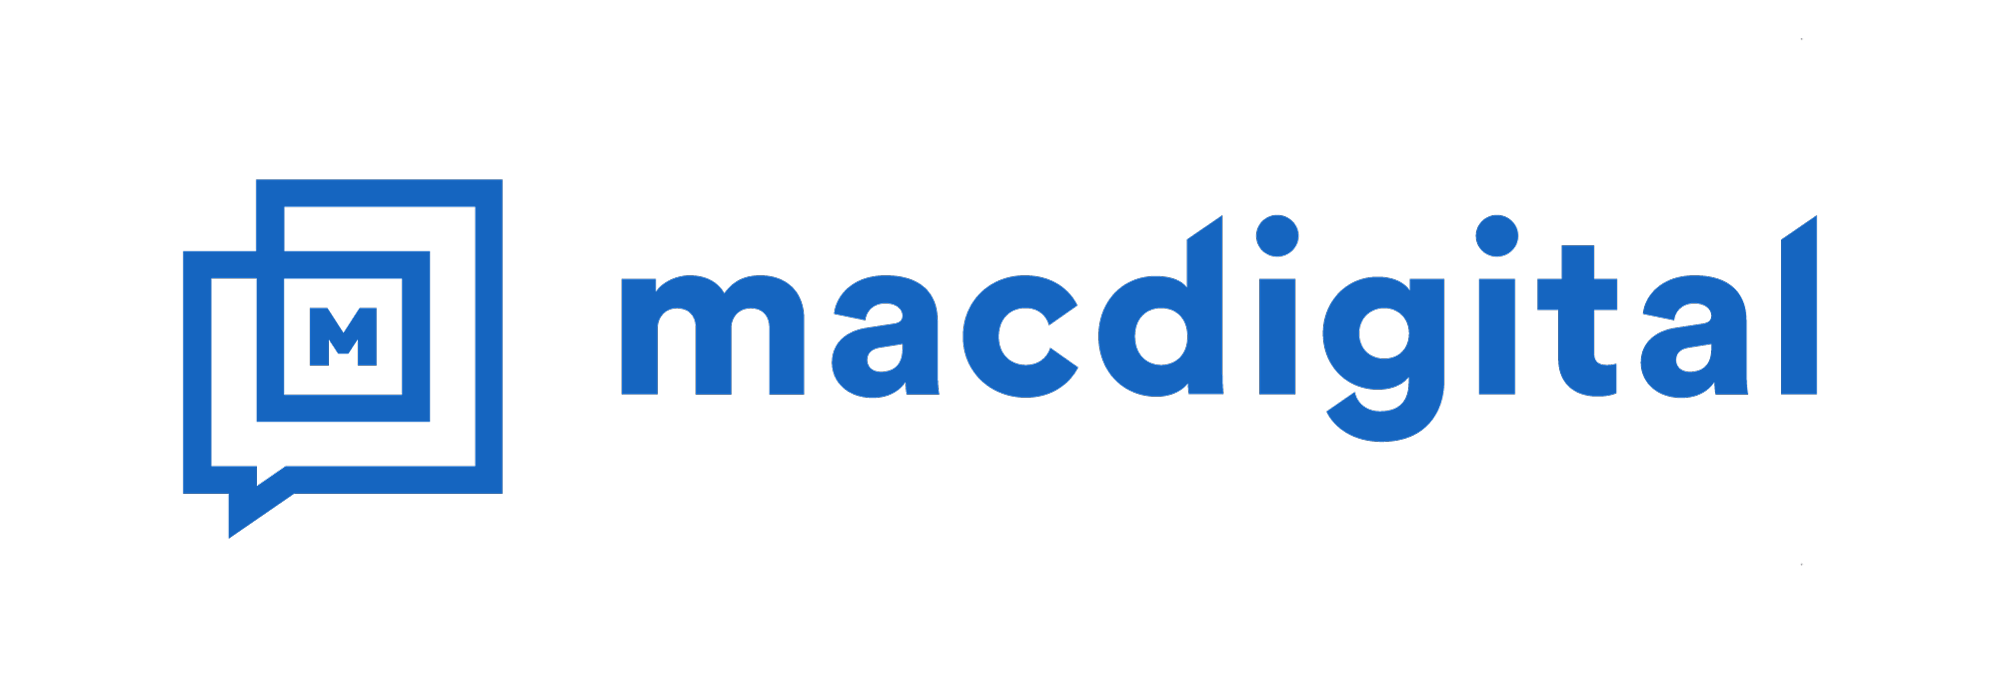 Mac Digital | Digital Agency with Specialism in the Tourism Sector